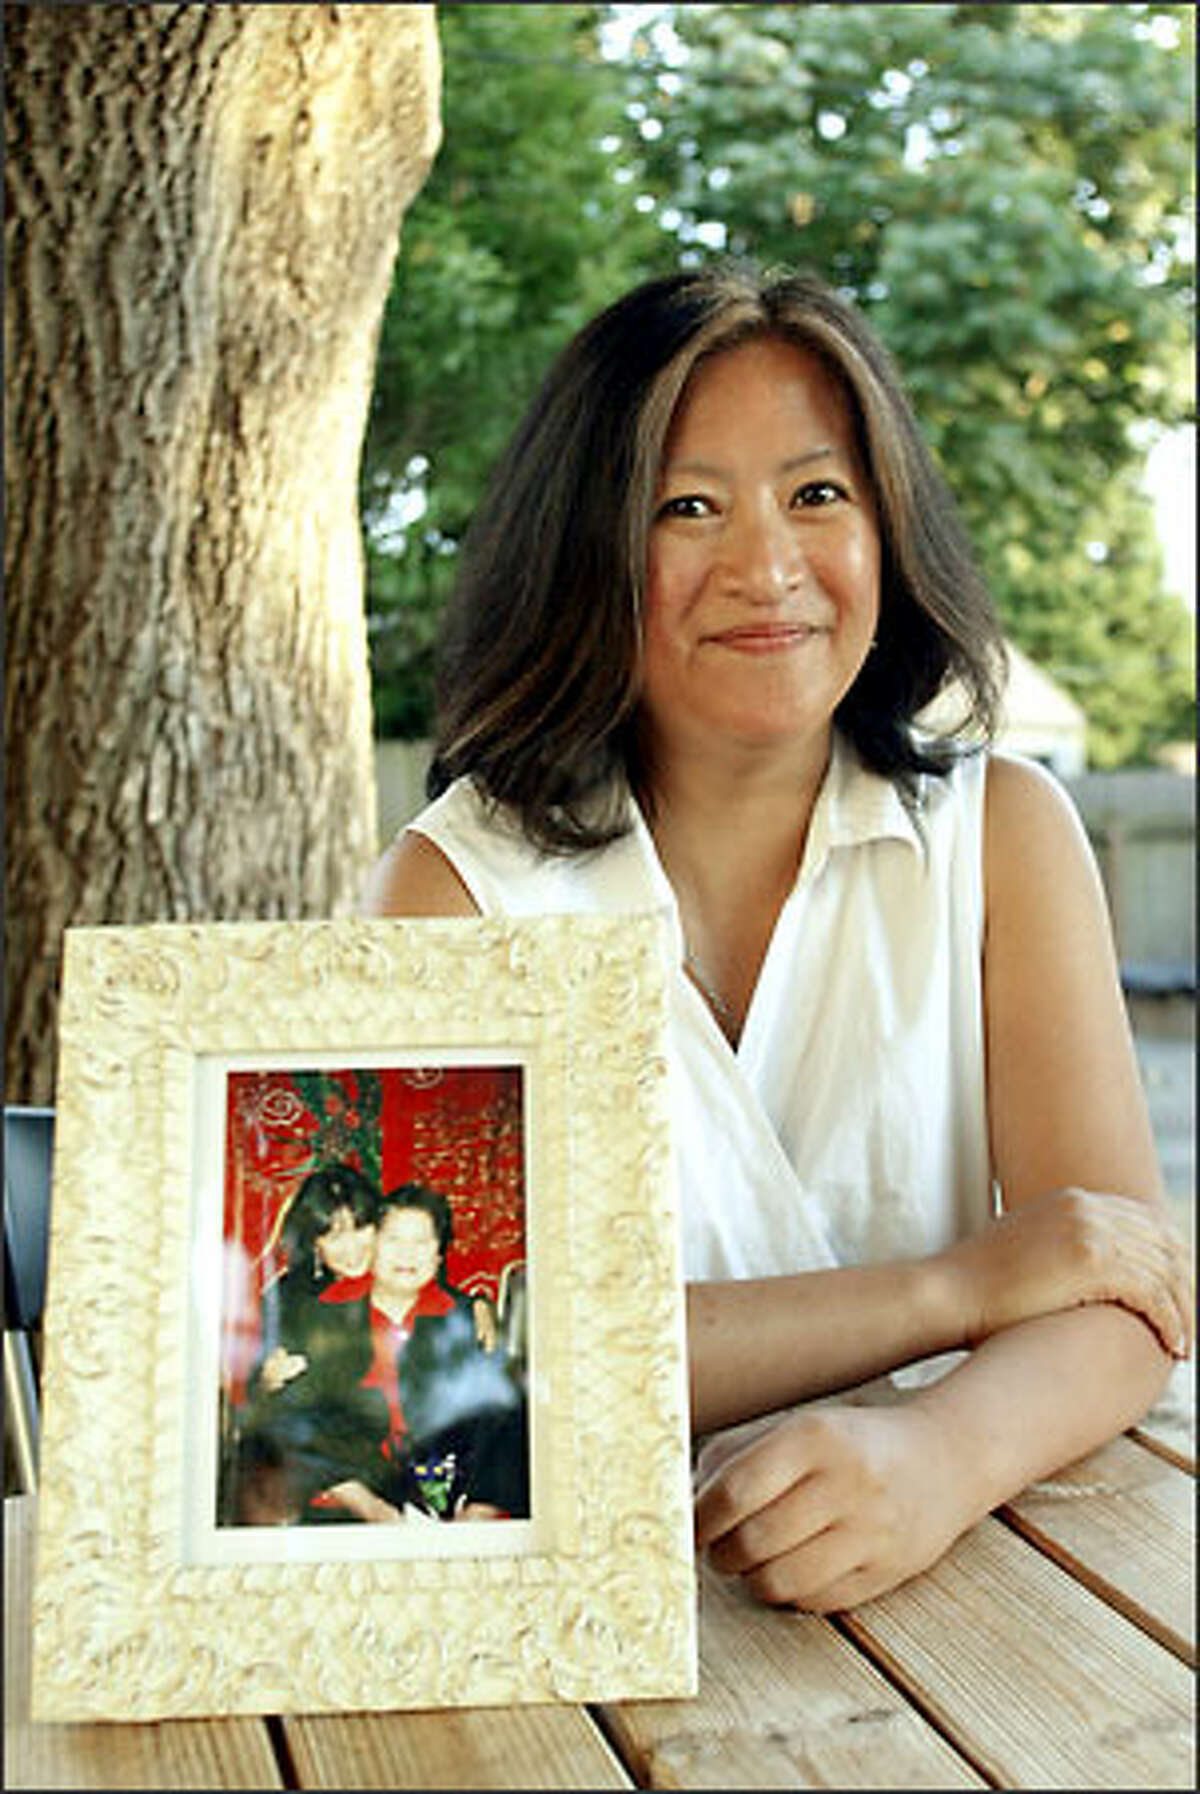 During her mother's final days, food expressed love for the family, says Carmen Español, shown with a photo of her and her mom from earlier days.